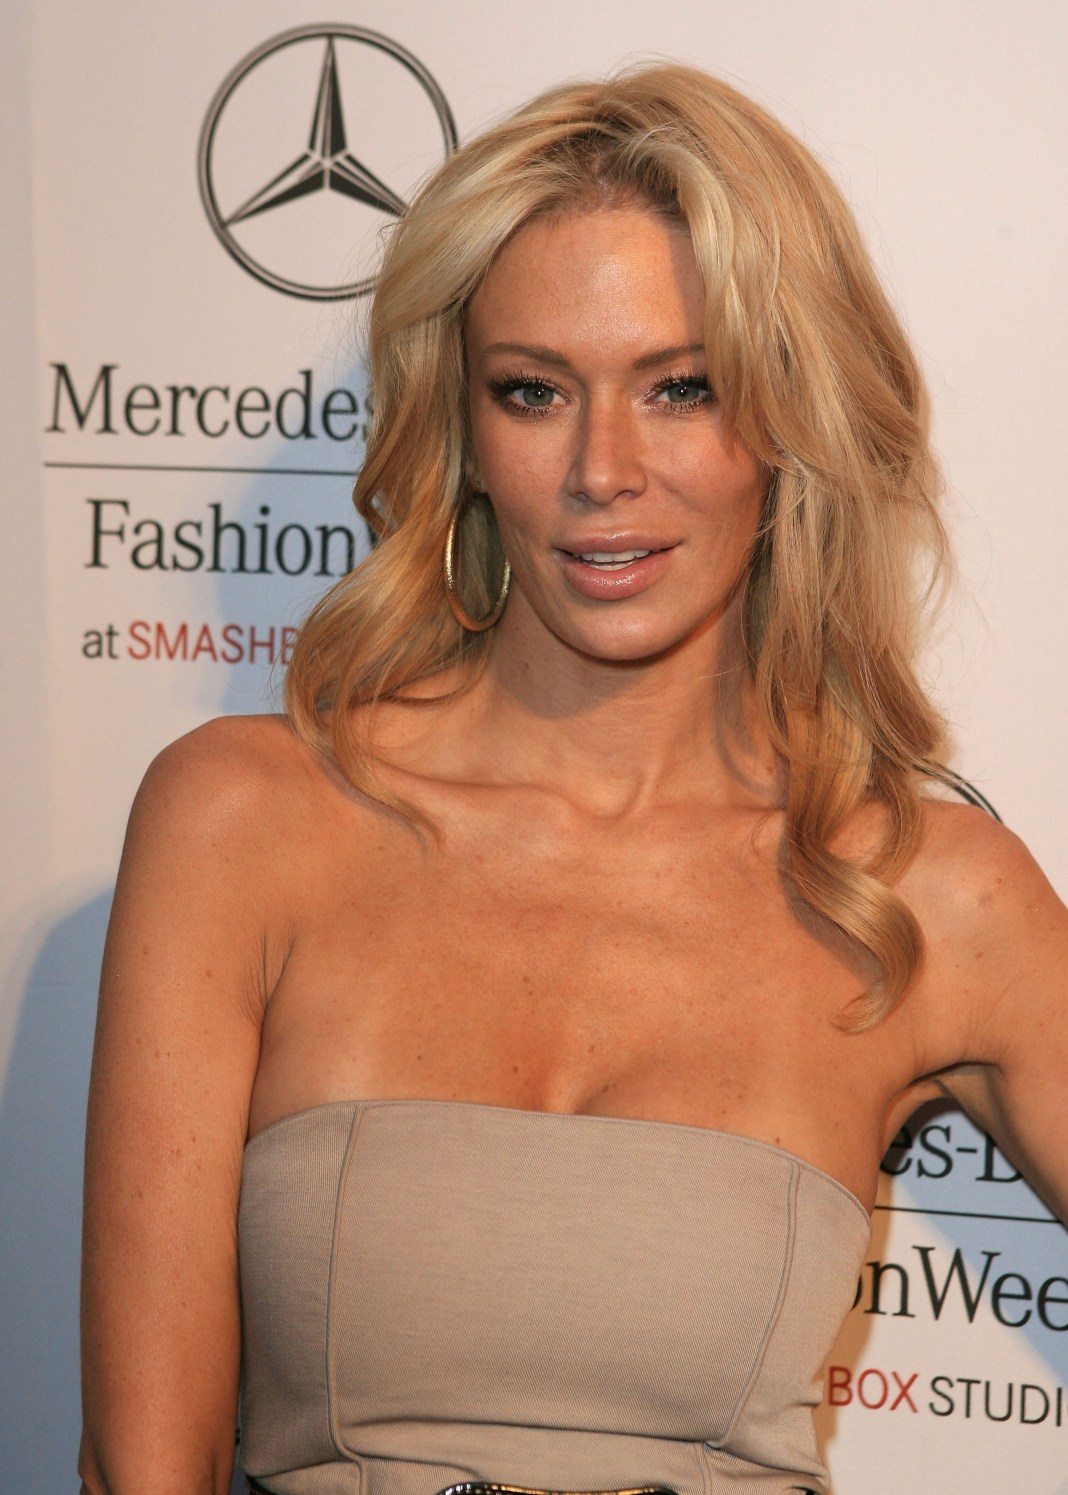 Jenna Jameson has expressed support for conspiracy theories